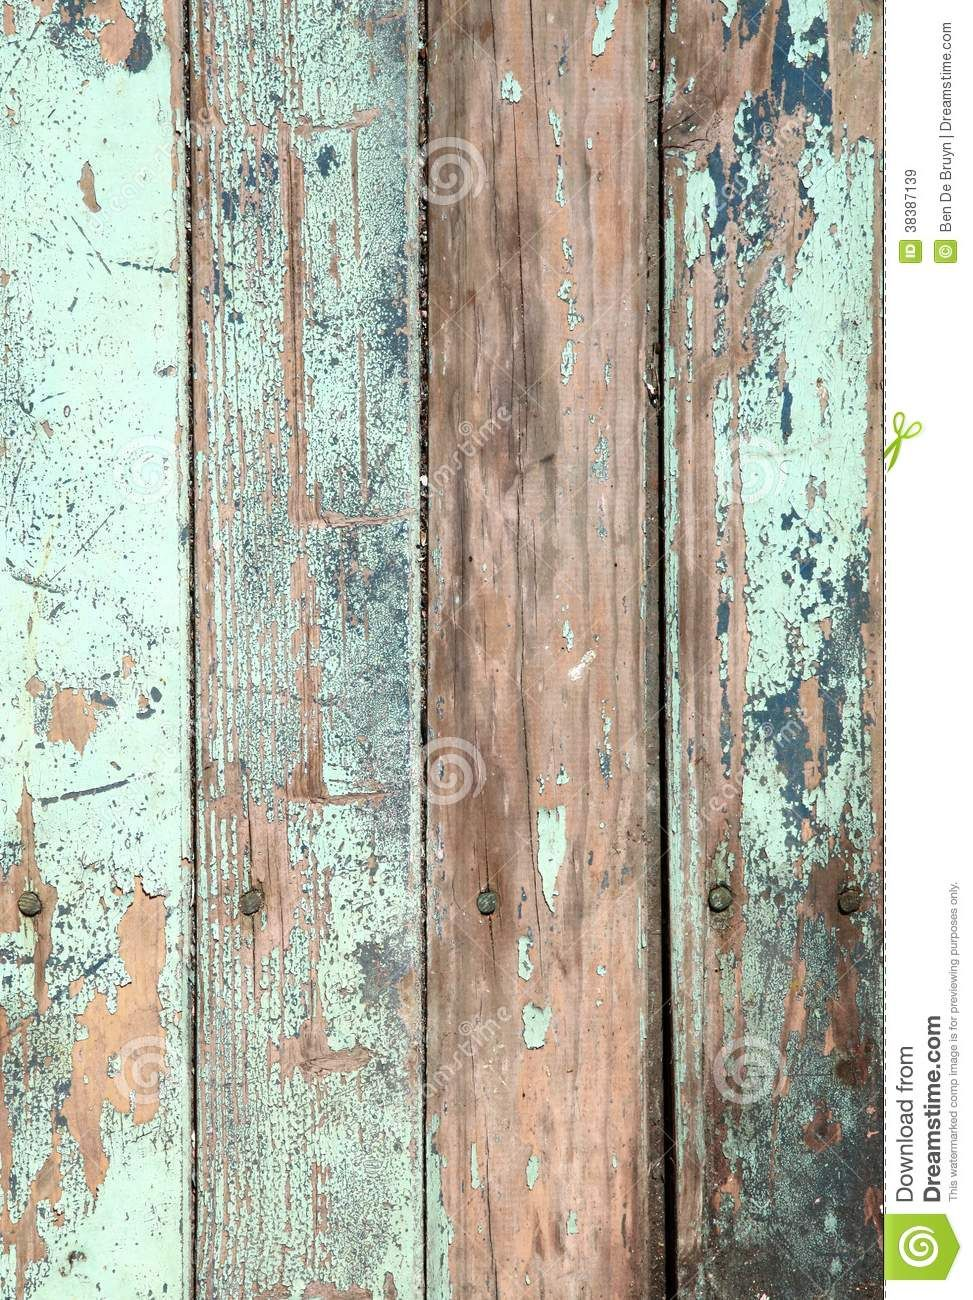 How To Render A Distressed Wood Paint Effect Google Search Wc Pinterest Google Search